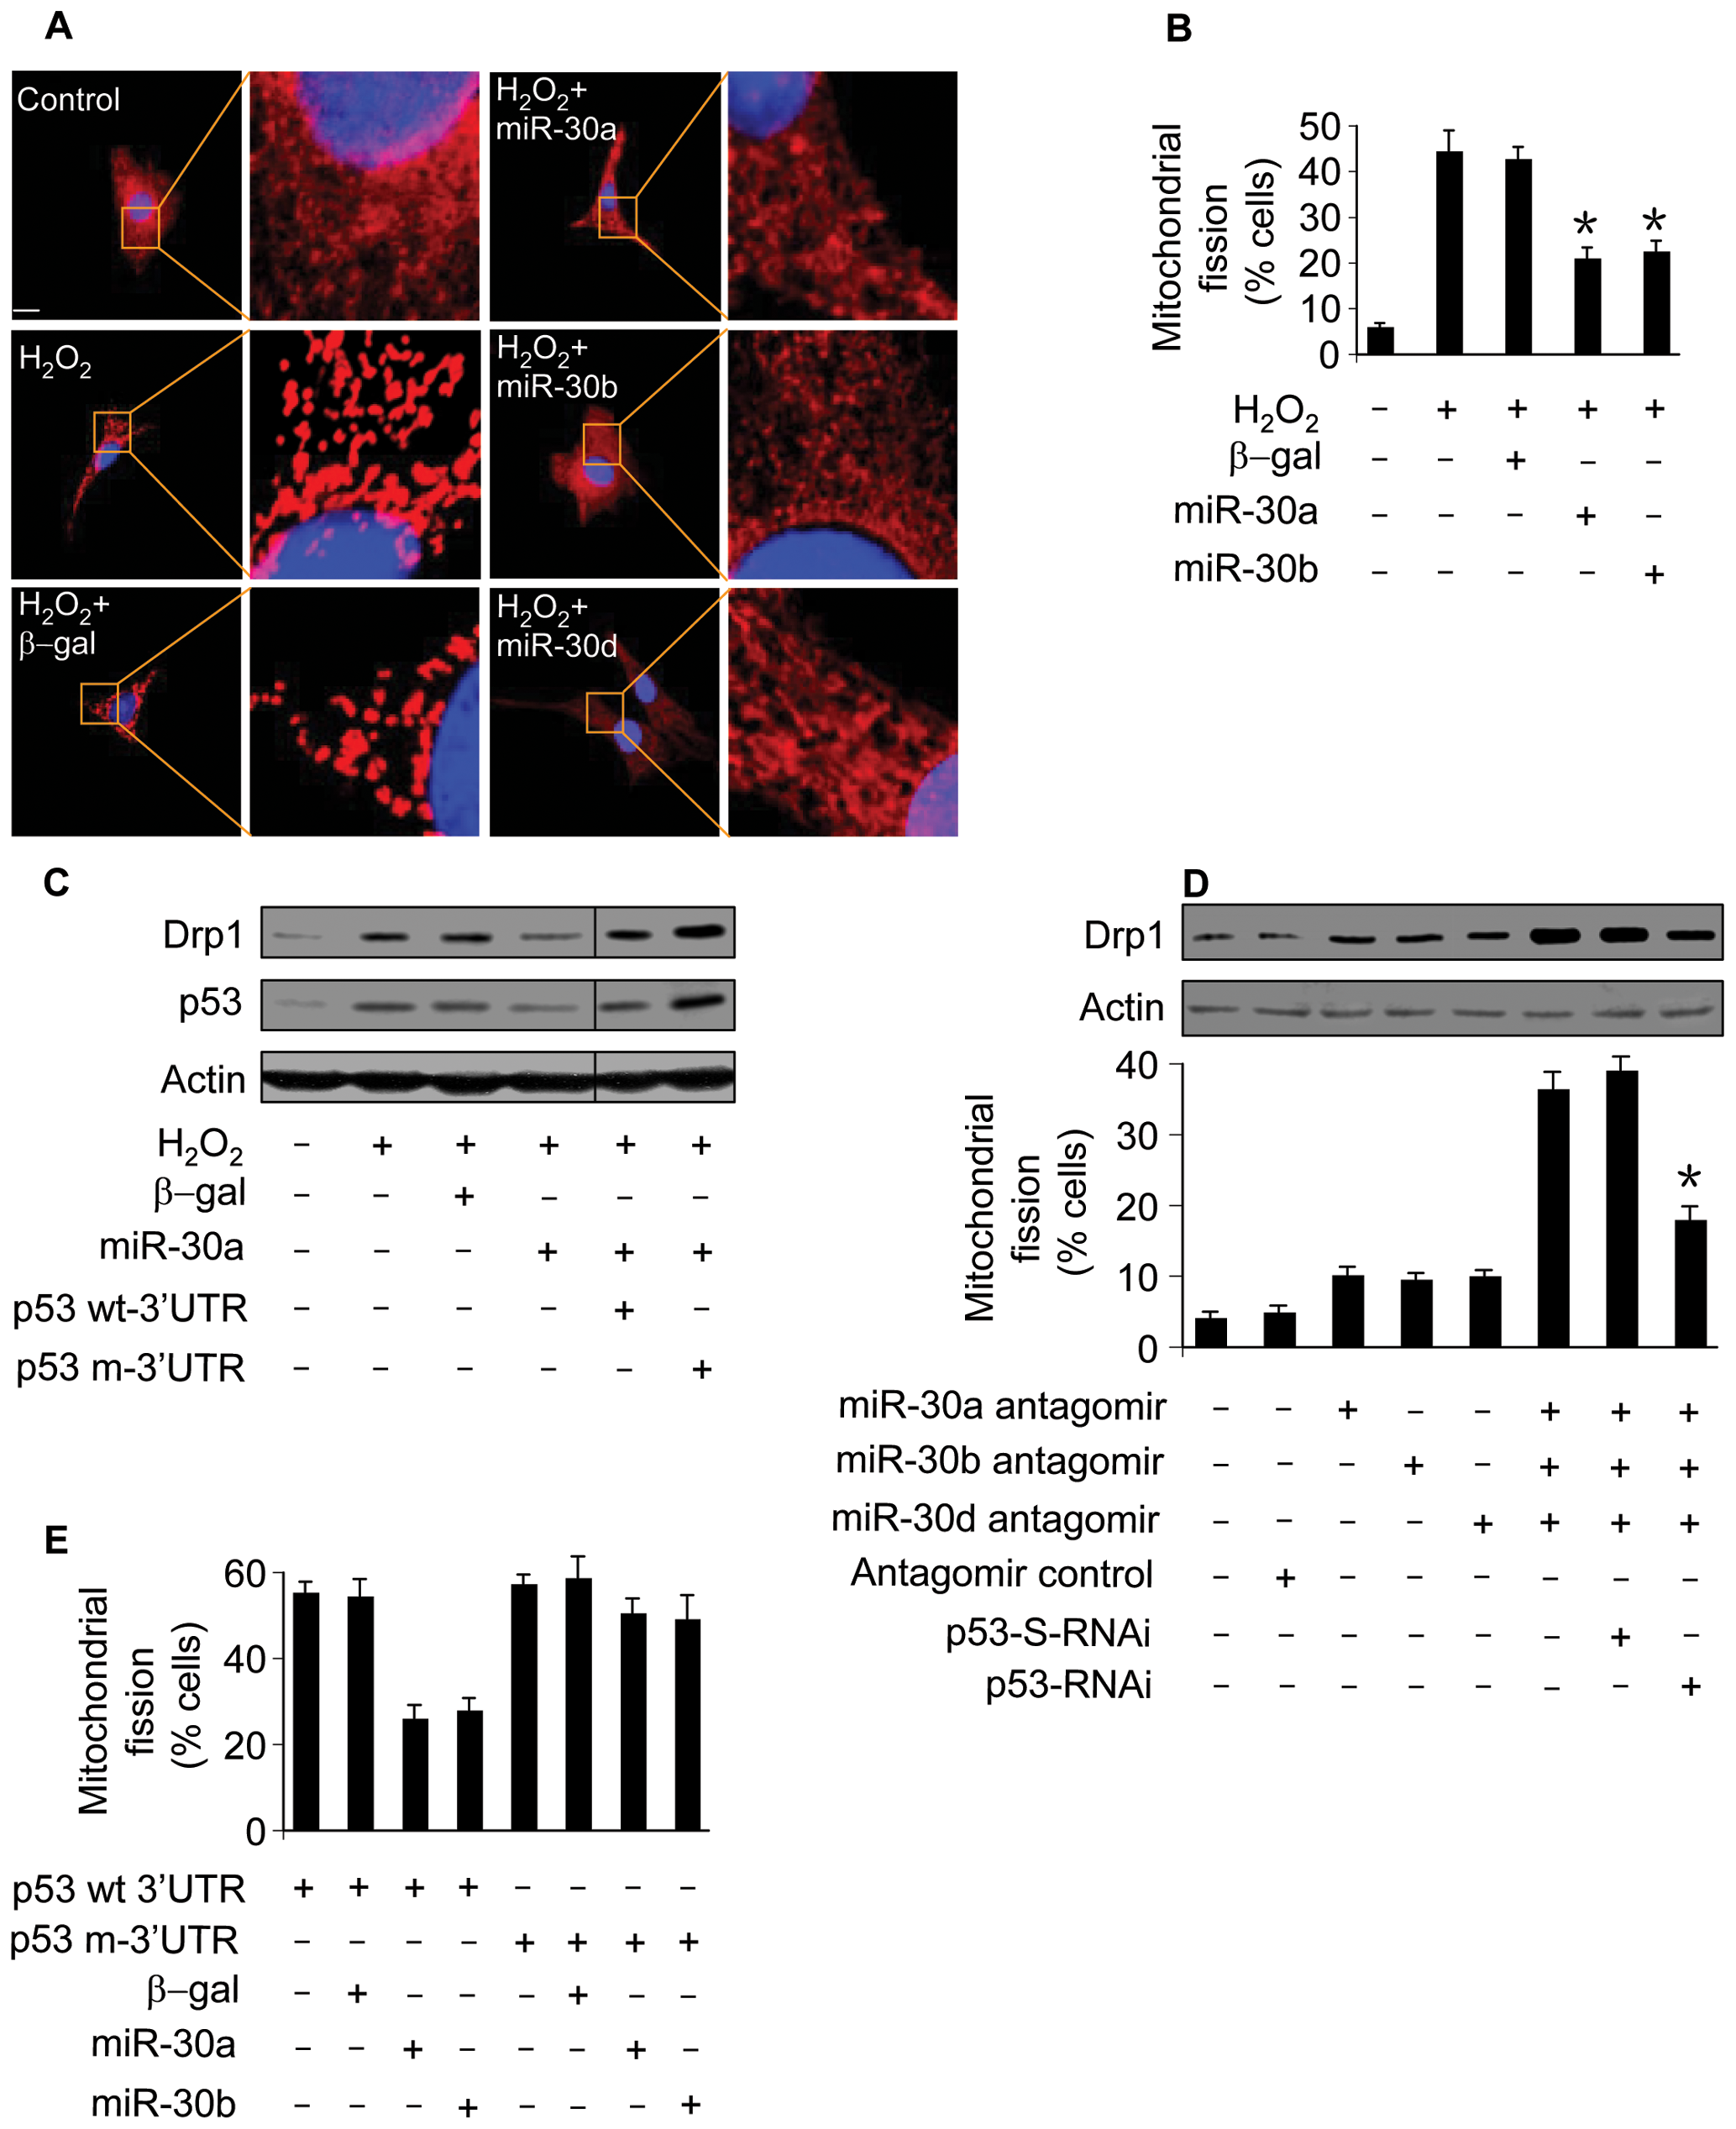 miR-30 family members regulate mitochondrial fission through p53.